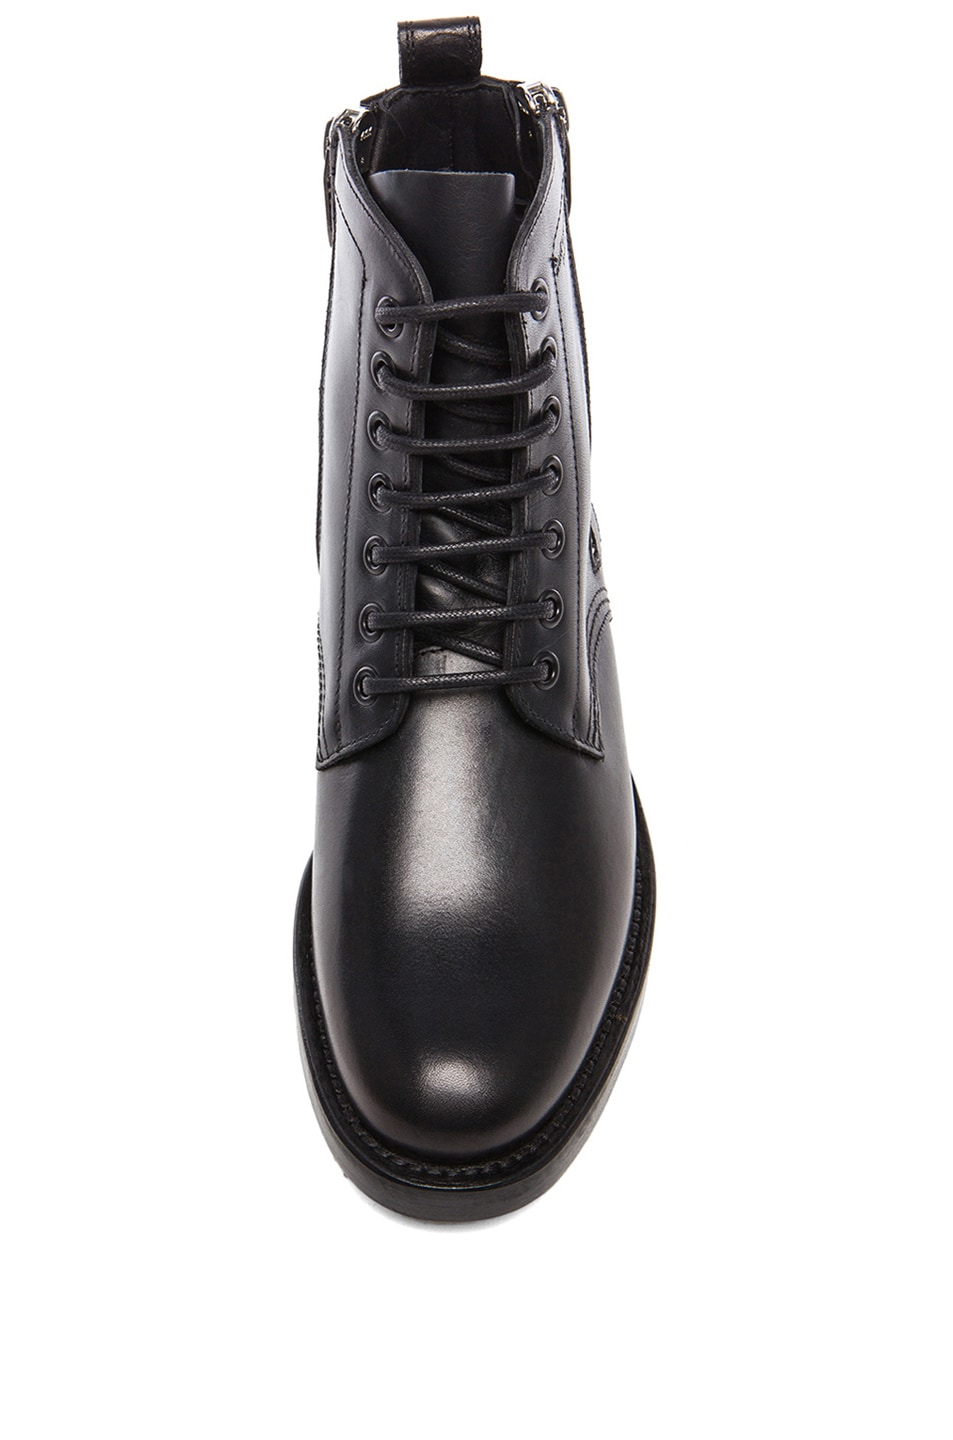 16cacd0efbe Image 4 of Saint Laurent Leather Ranger Zipper Combat Leather Boots in Black